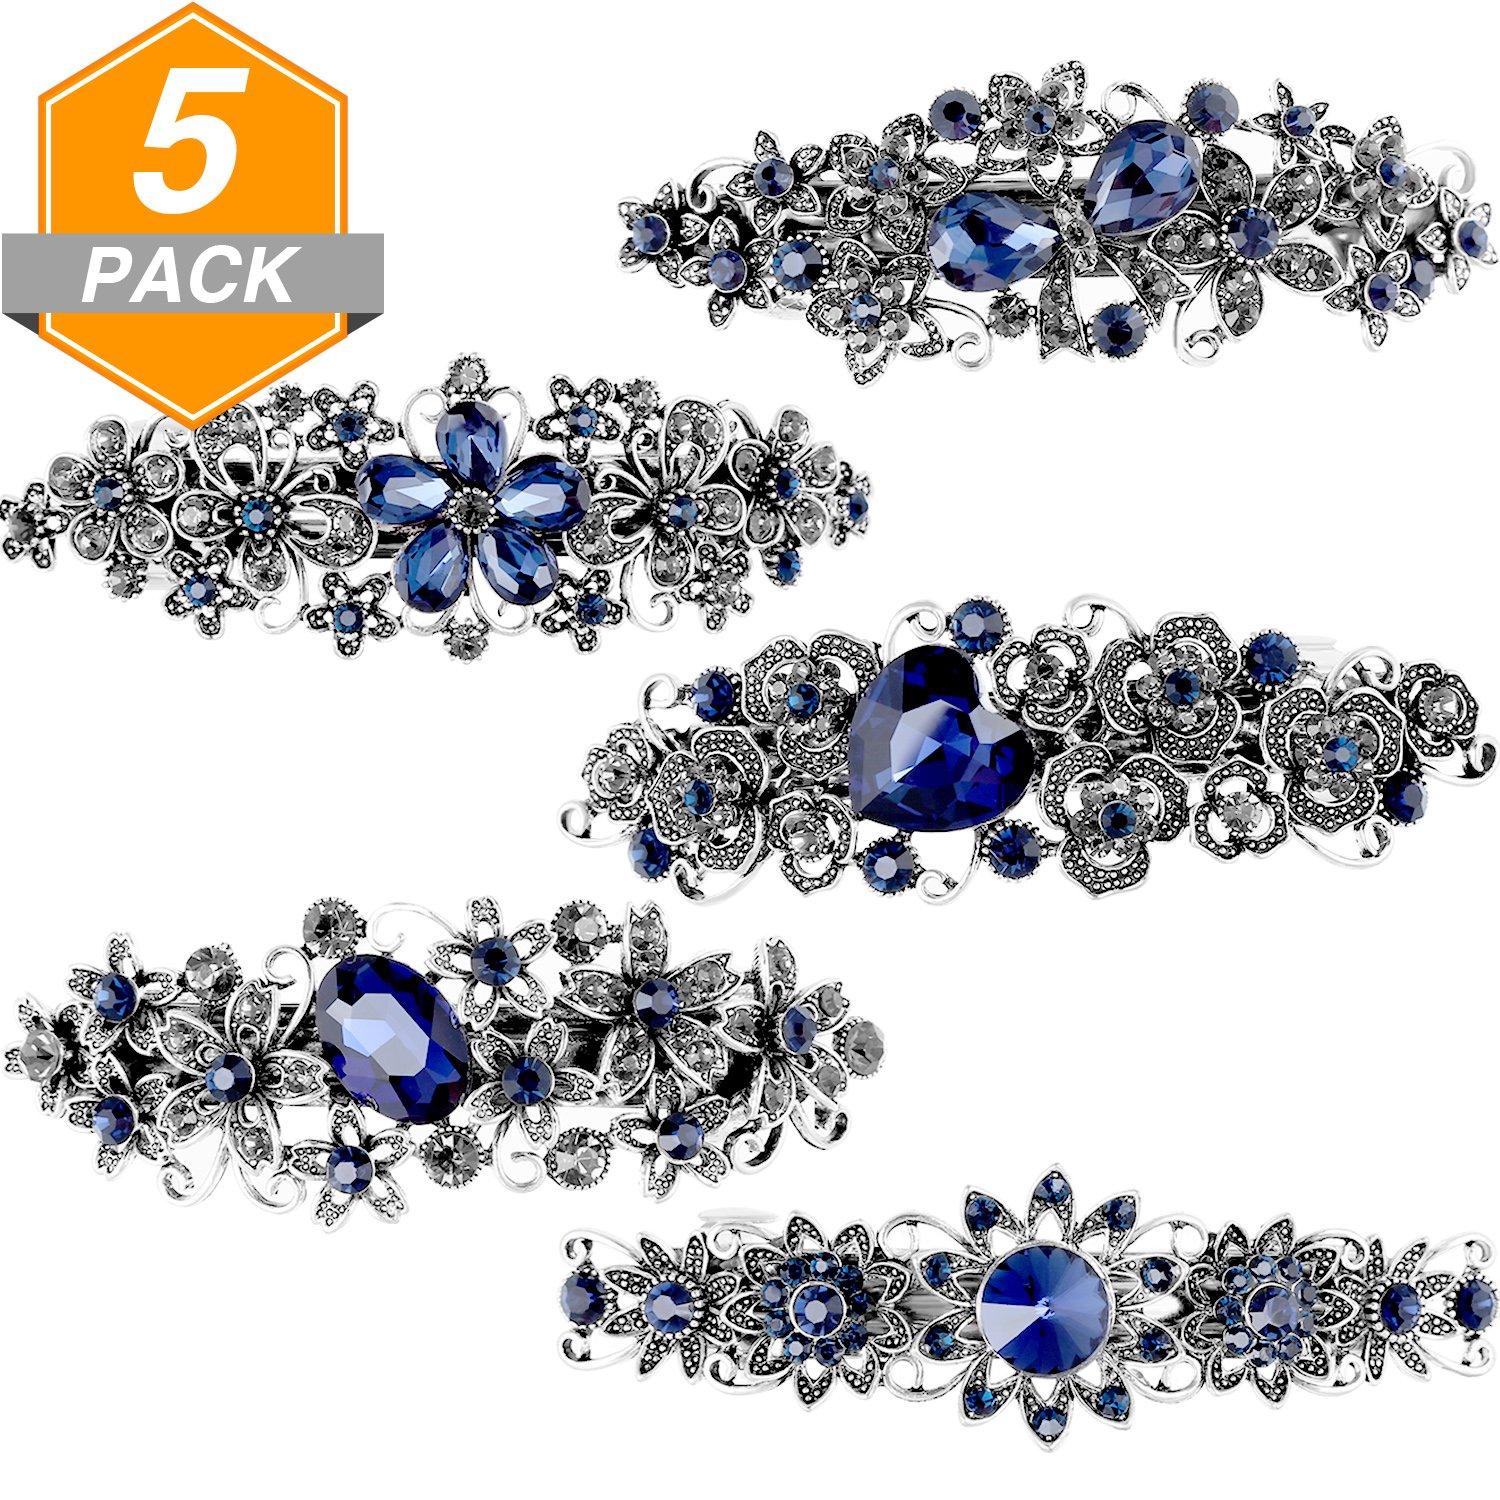 Gejoy 5 Pieces Vintage Rhinestone Hair Barrettes Faux Crystal French Spring Clips Metal Clip for Women and Girls, Black and Navy Blue